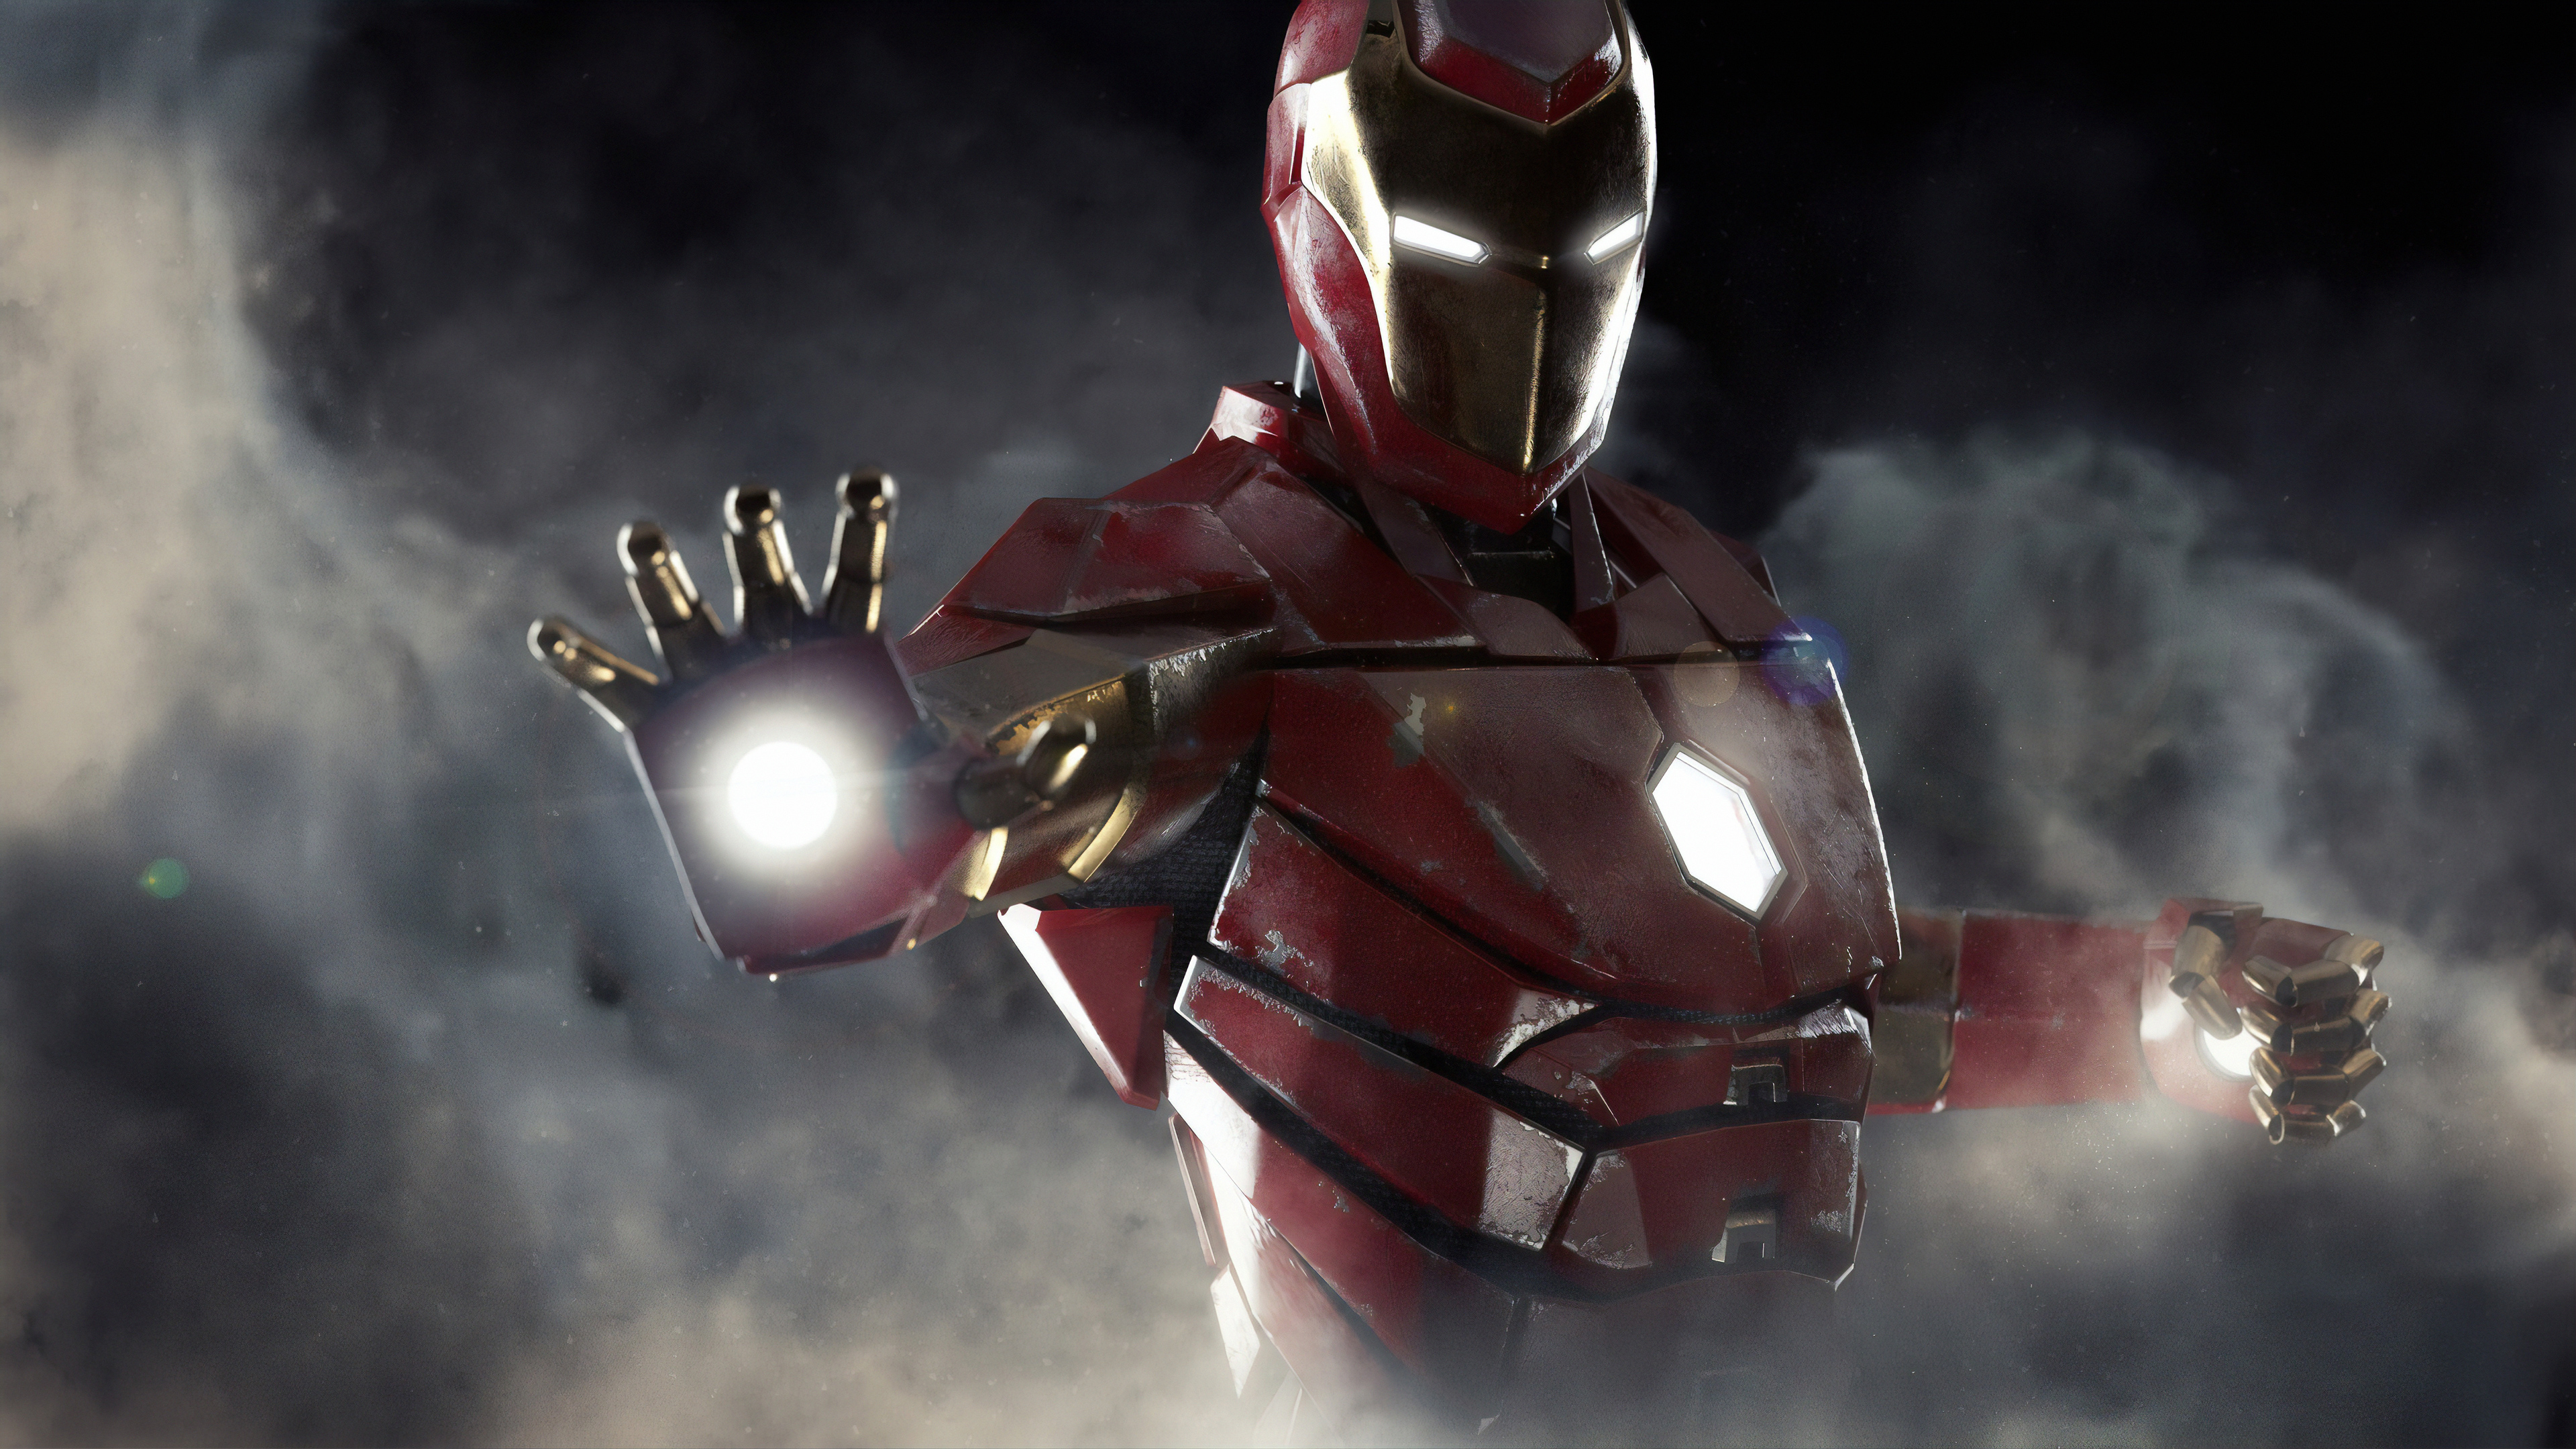 iron man new 4k artwork 1562105989 - Iron Man New 4k Artwork - superheroes wallpapers, iron man wallpapers, hd-wallpapers, digital art wallpapers, artwork wallpapers, 4k-wallpapers